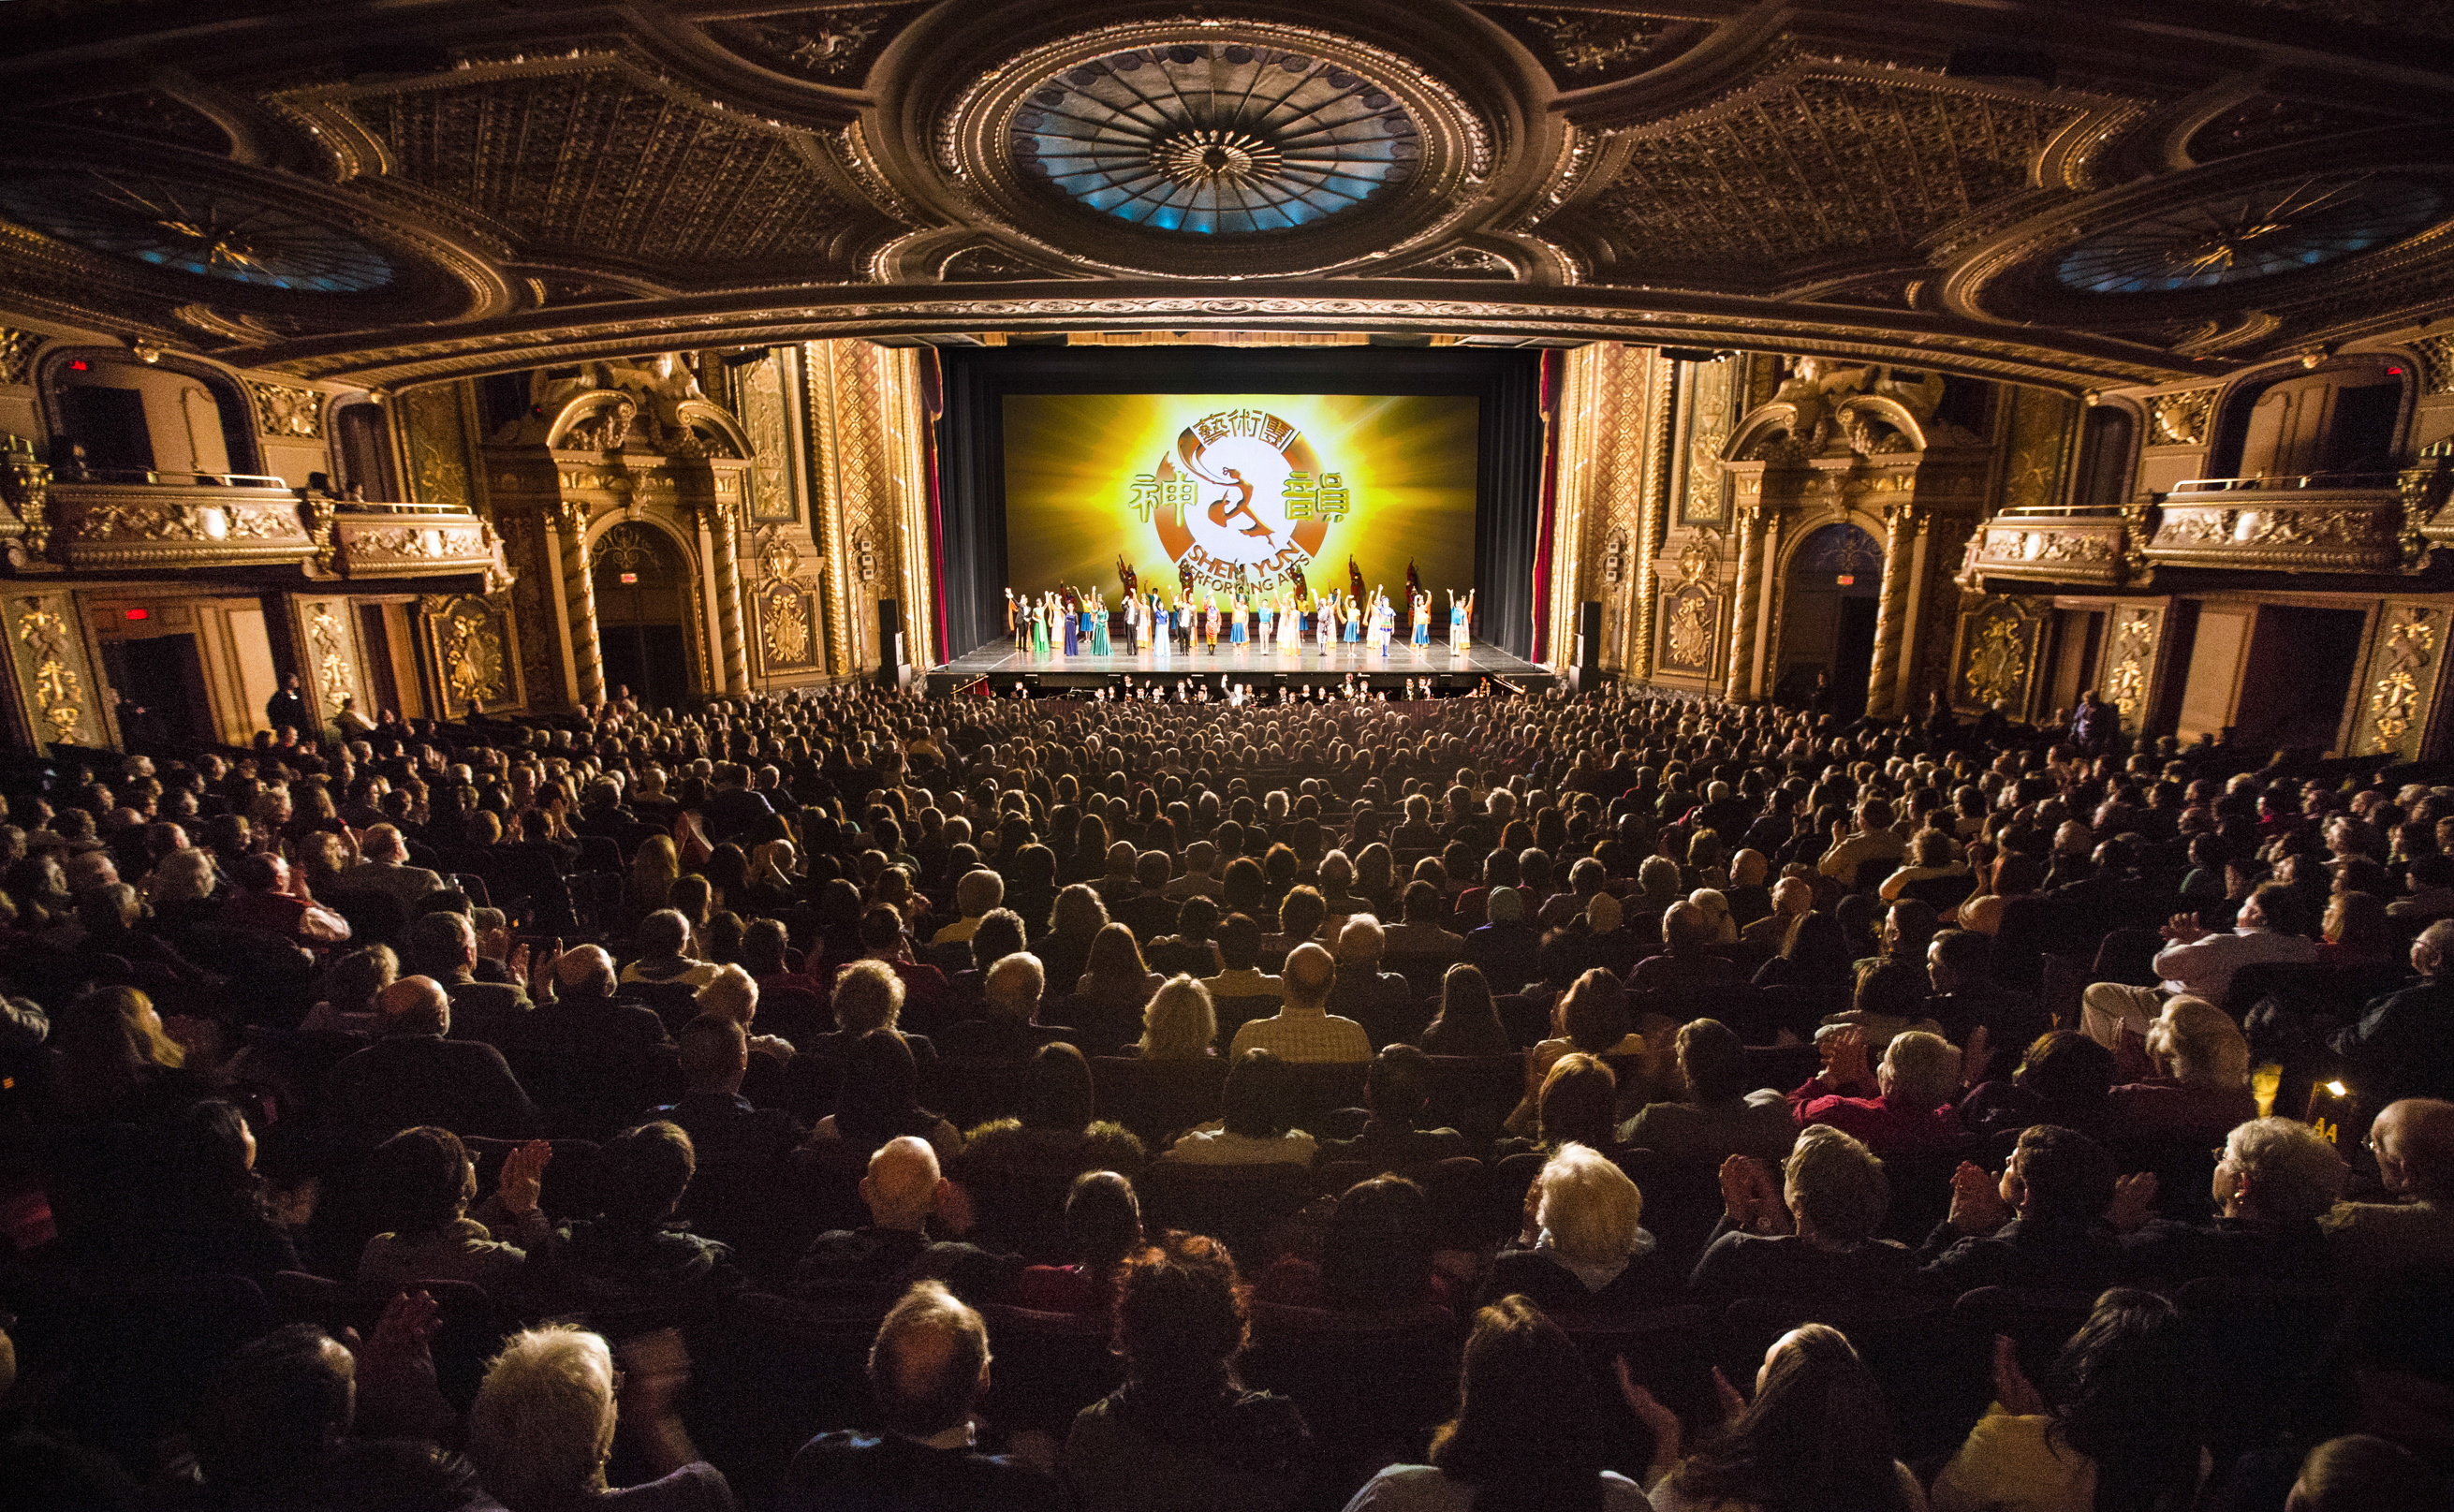 Shen Yun is the Most Beautiful Birthday Gift | Boston | Citi Performing  Arts Center | Wang Theatre | The Epoch Times